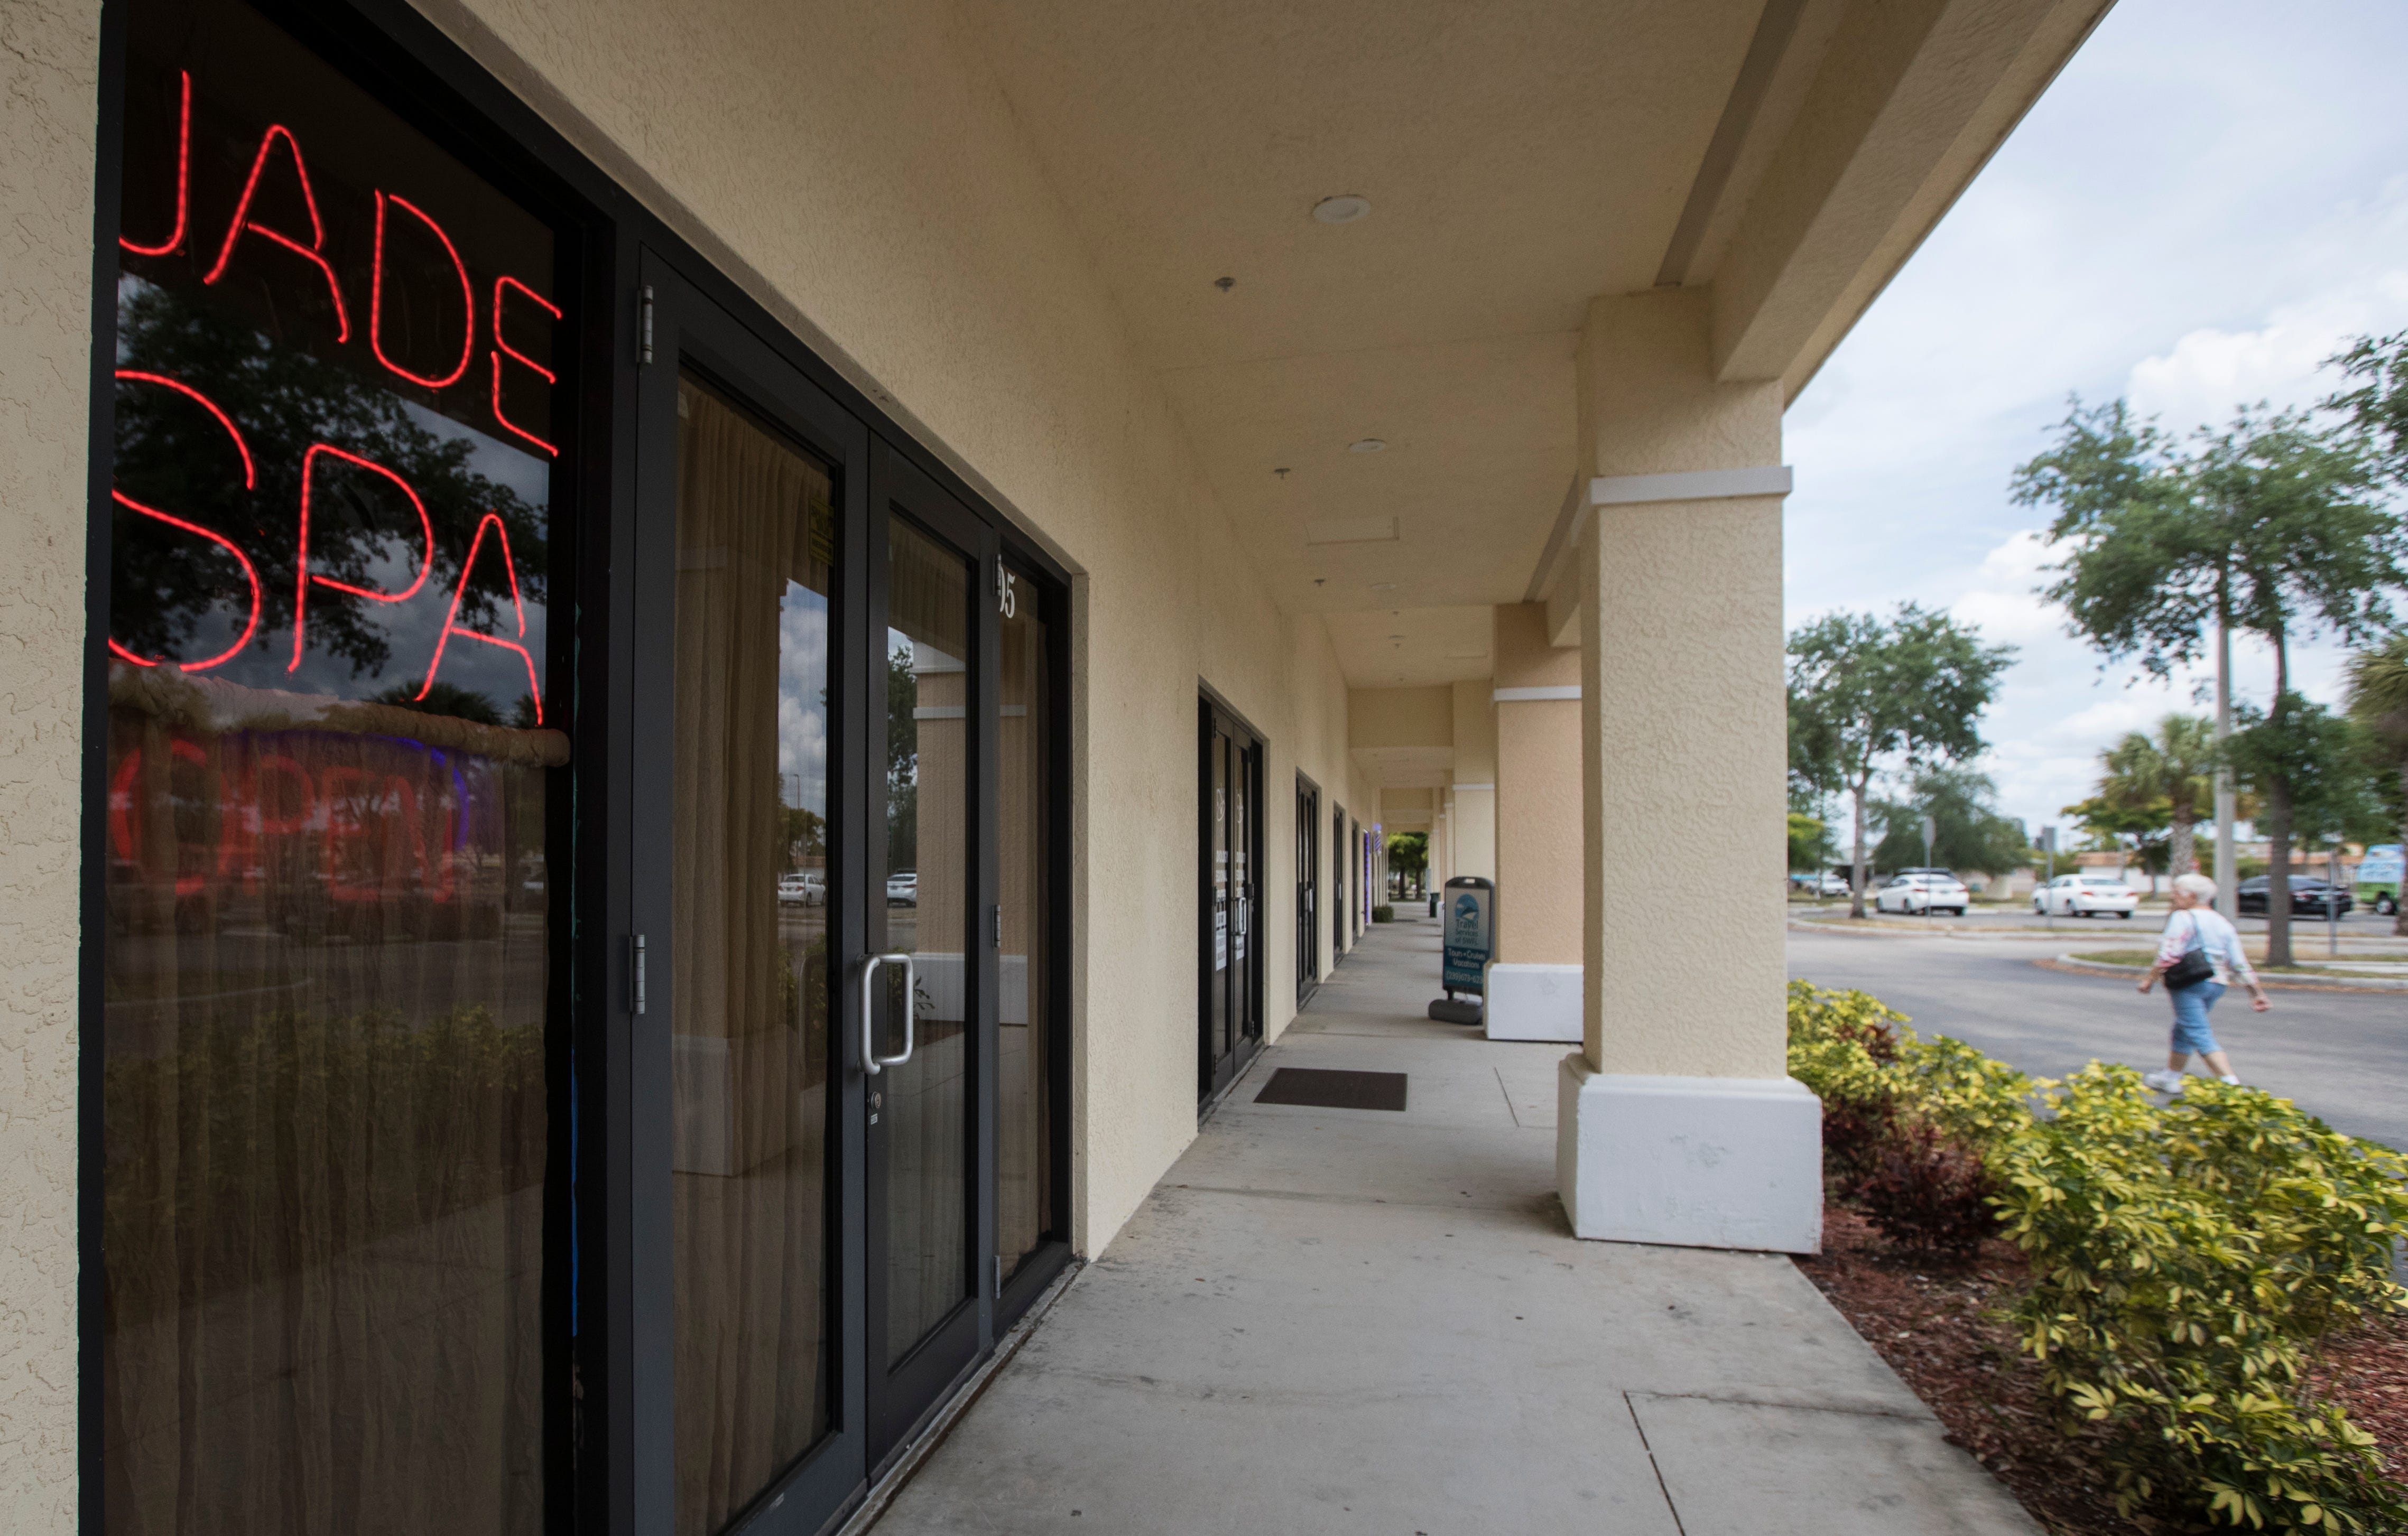 """Jade Spa in Cape Coral, Florida, was one of 13 massage parlors that the Florida Department of Law Enforcement said was """"engaging in acts of prostitution and possibly human sex trafficking of Asian females."""" The spa was raided in June 2017. It is open today under new ownership."""